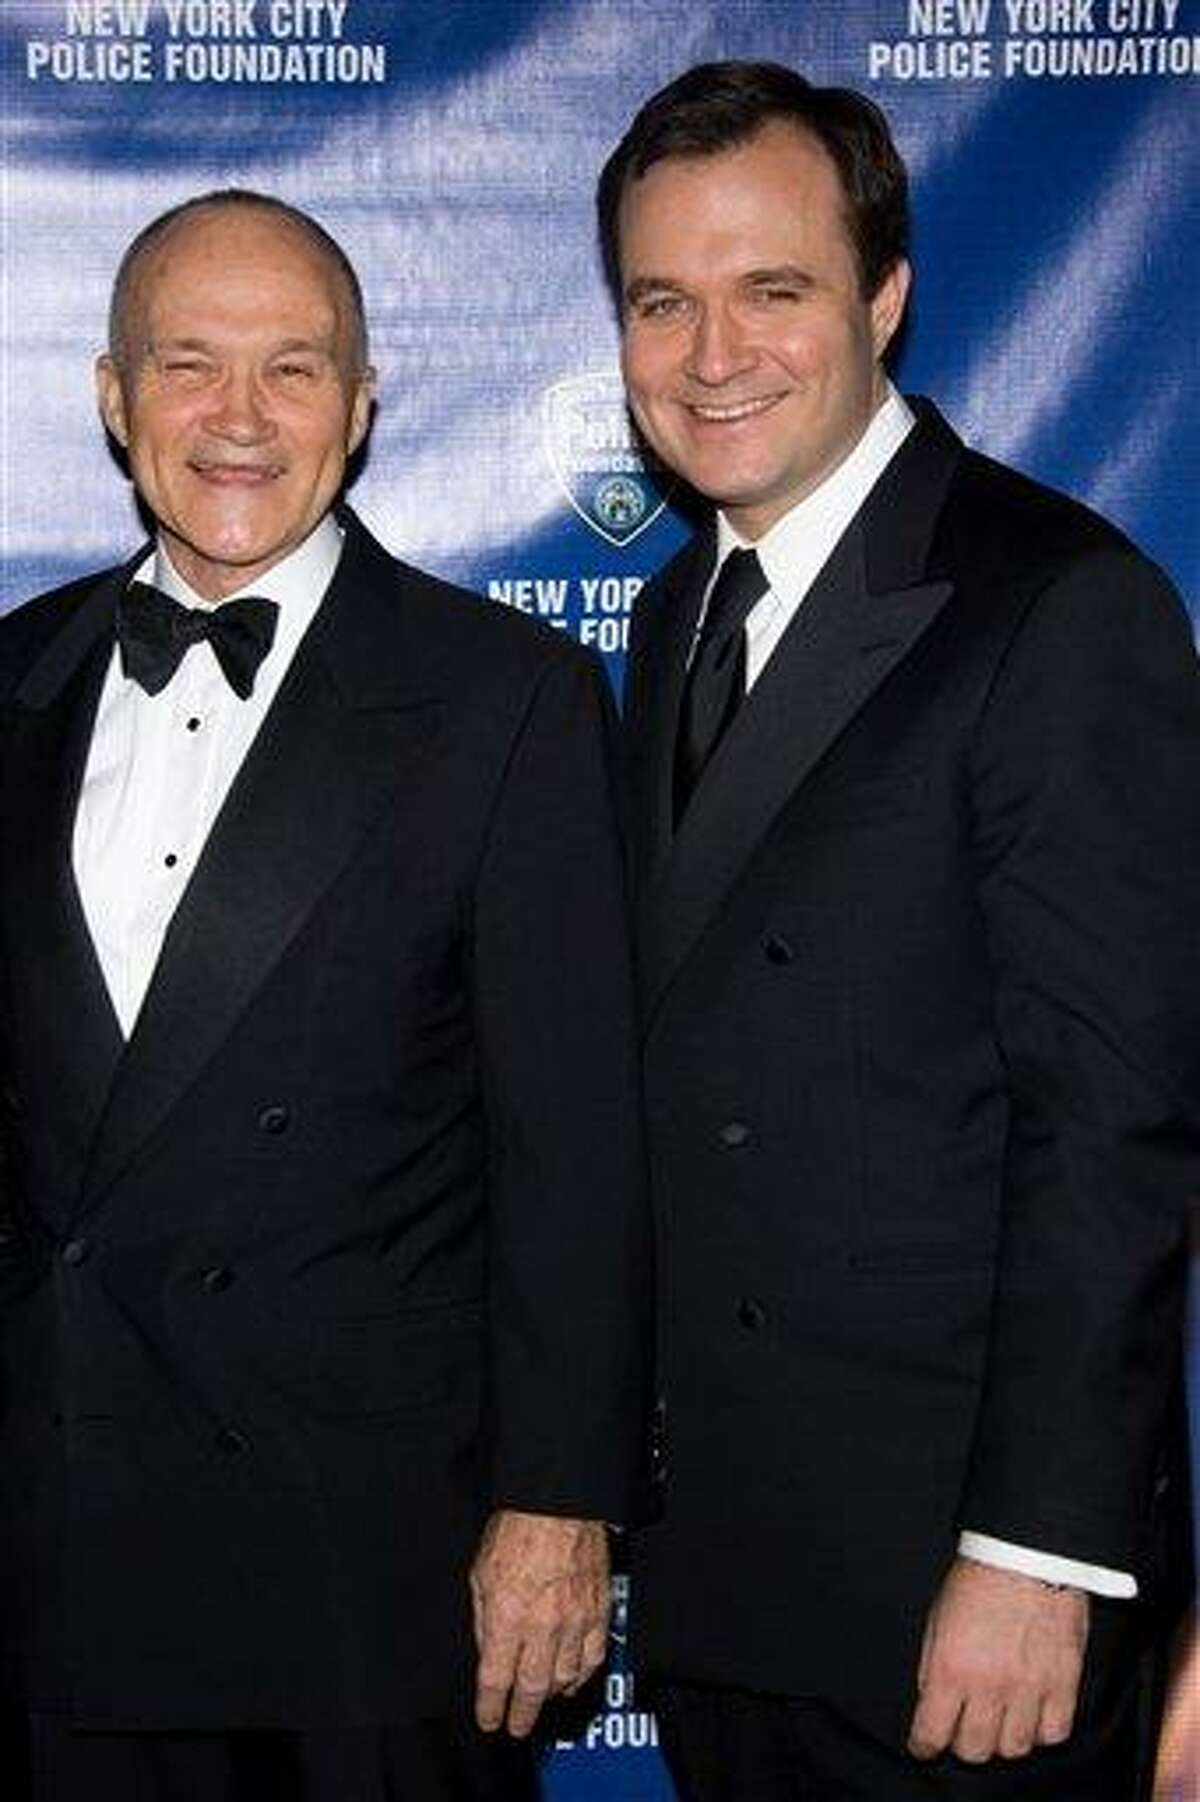 New York Police Commissioner Raymond Kelly and son Greg attend the New York City Police Foundations 31st Annual Gala in New York, in this March 3, 2009 file photo. Kelly, son of the city police commissioner, is under investigation by prosecutors and denies any wrongdoing, his lawyer said Wednesday without elaborating on the allegations. Associated Press